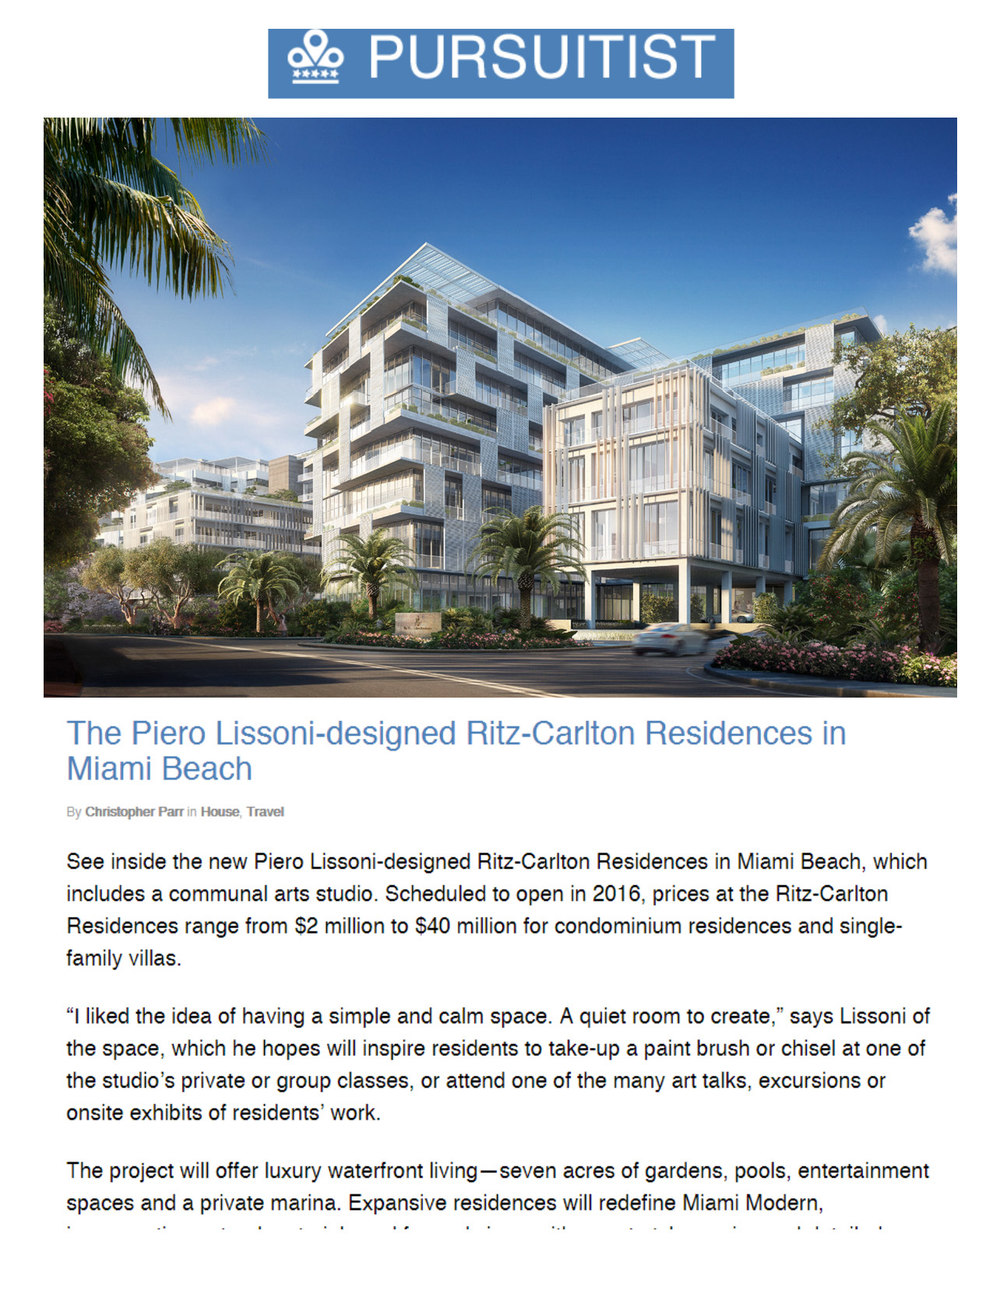 Pursuitist - The Piero Lissoni-designed Ritz-Carlton Residences in Miami Beach - 6.14.15_Page_1.jpg